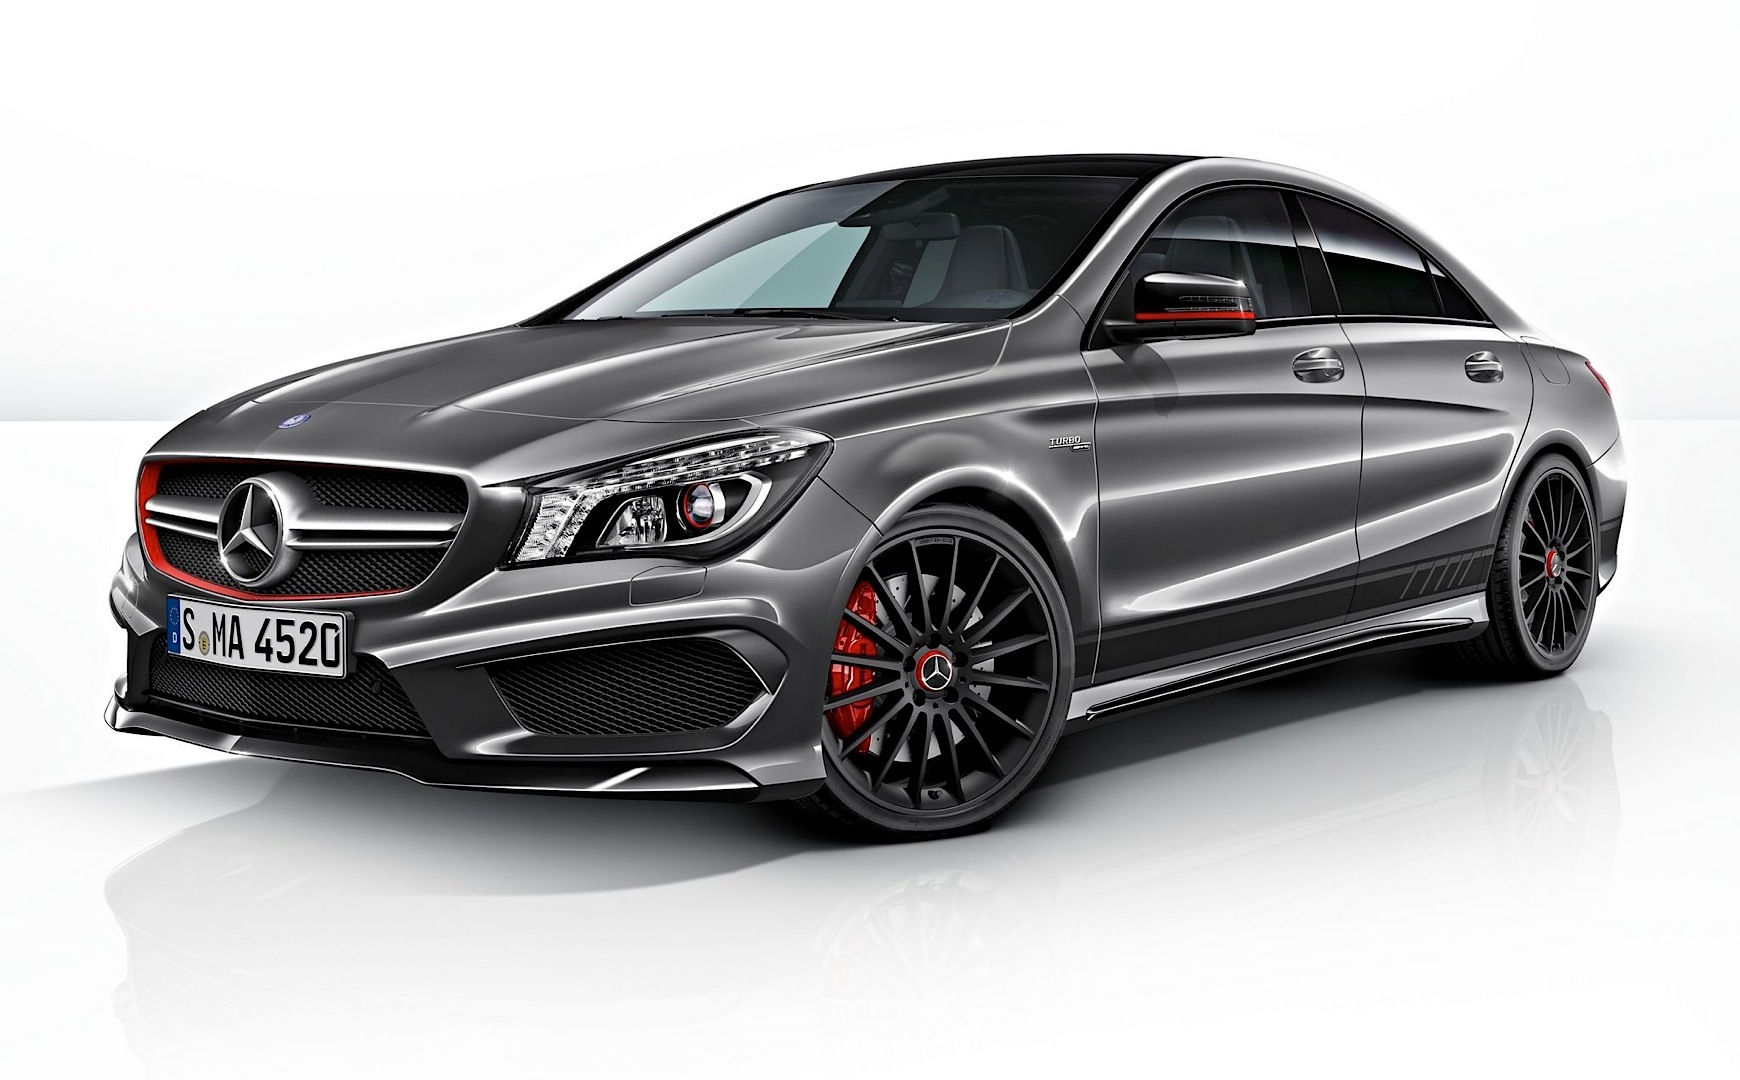 cla 45 amg edition 1 sales are a go - autoevolution